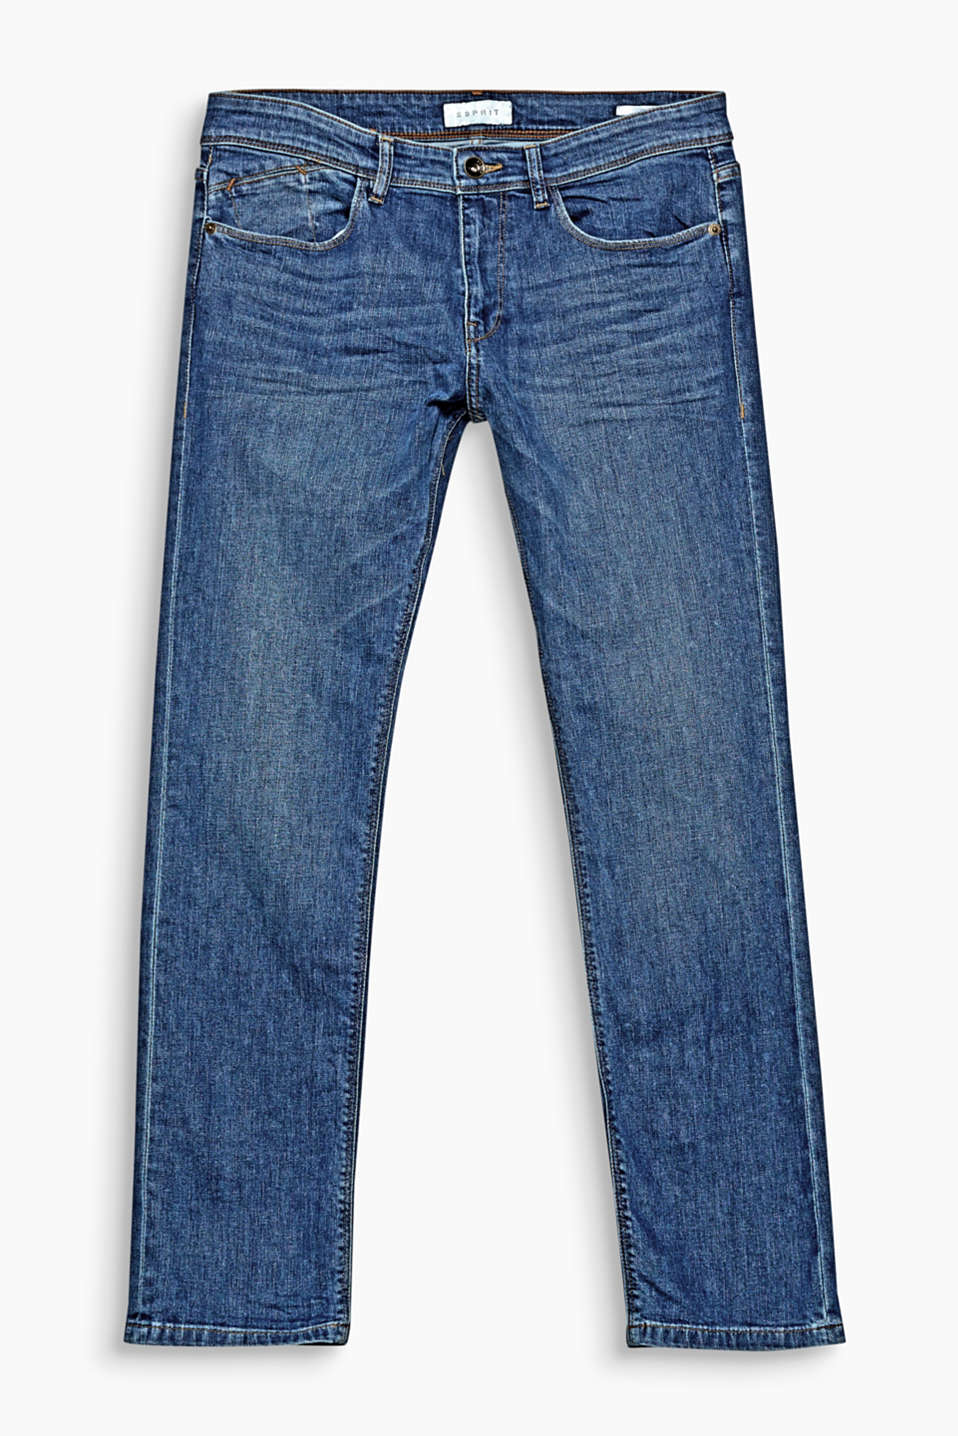 We love authentic denim! Soft garment-washed effects make these five-pocket jeans a top choice for street style looks!